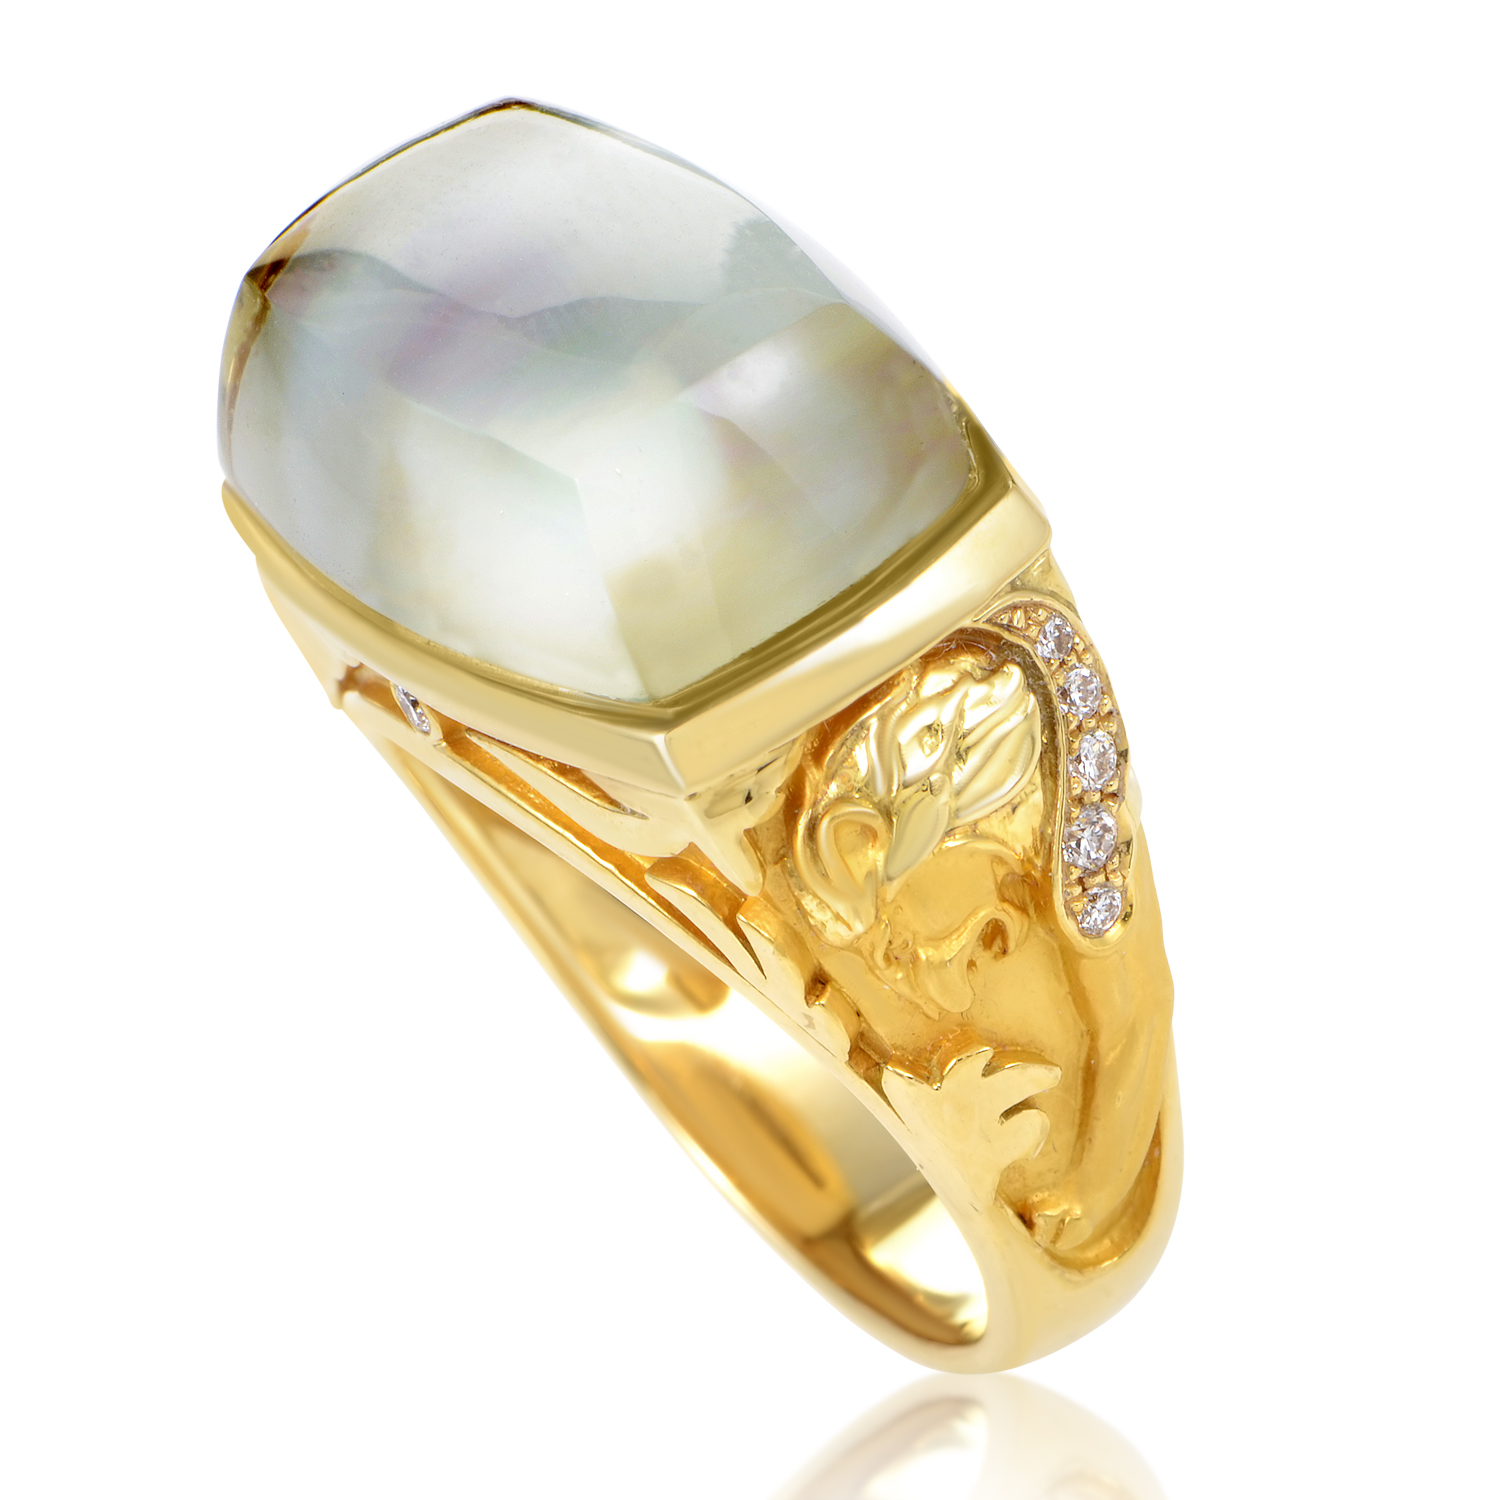 Babylon Caramelo Women's 18K Yellow Gold Diamond & Quartz Ring